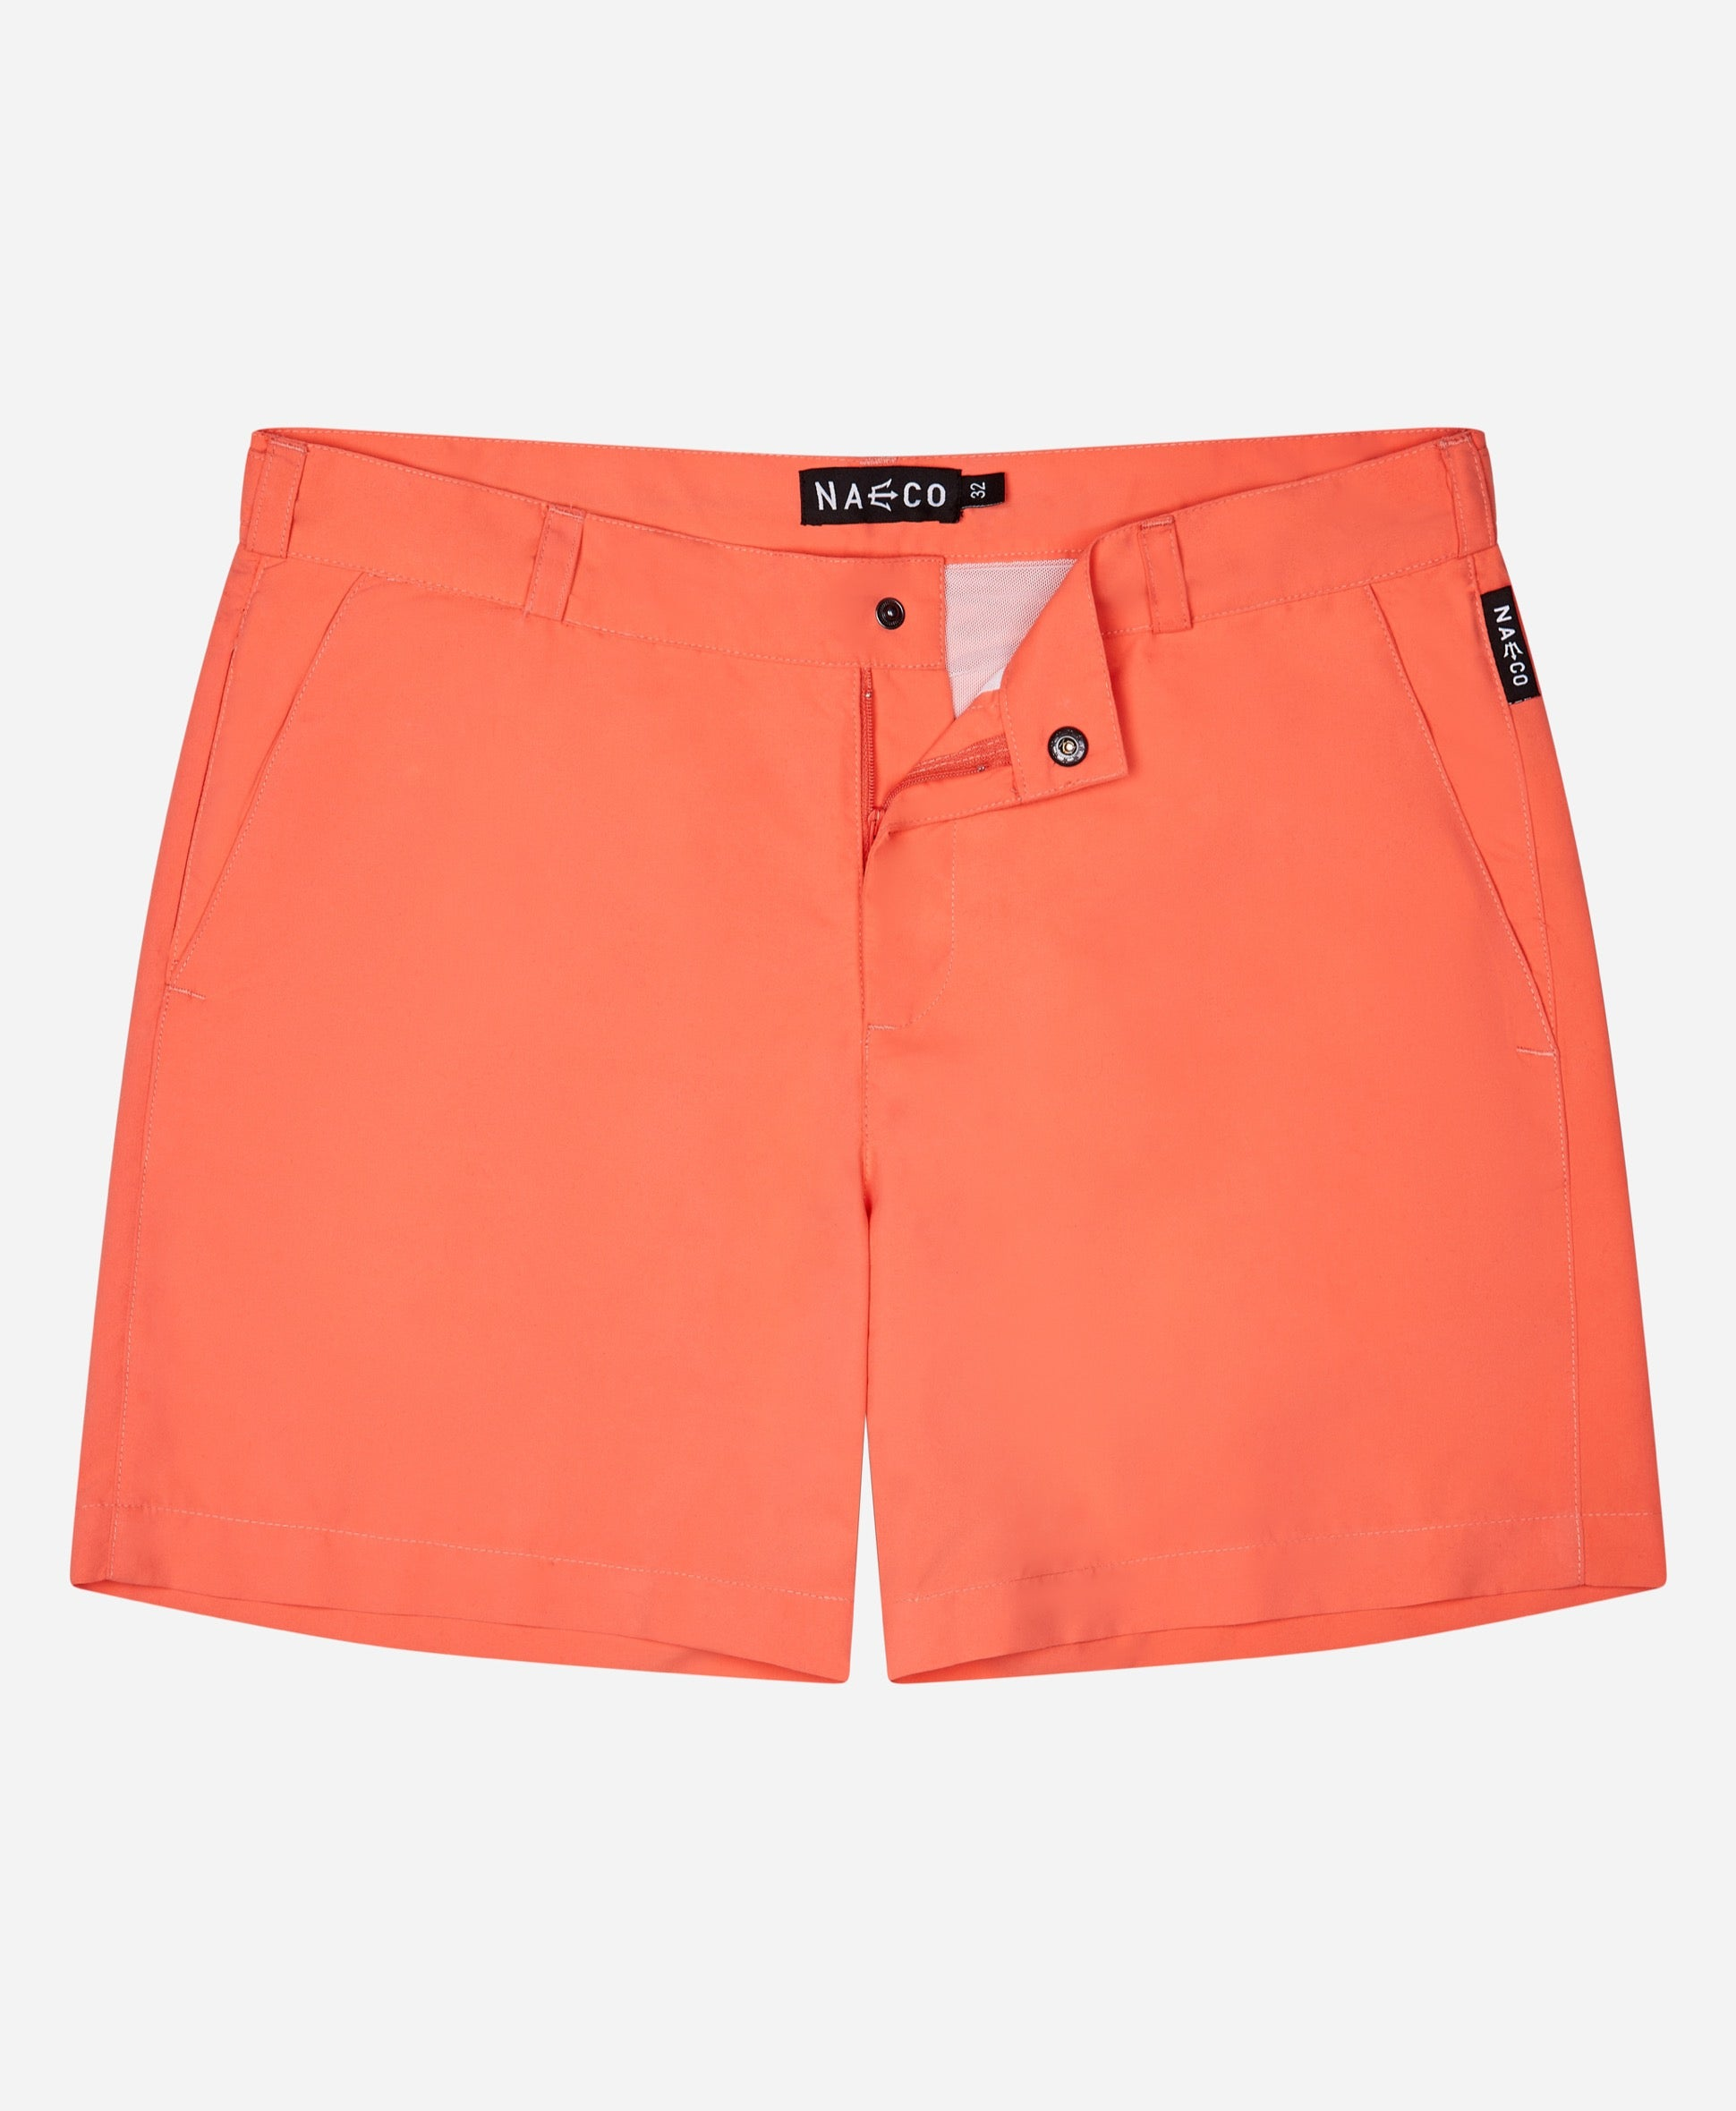 Naeco Original's - Living Coral - Naeco - Luxury Mens Swimwear - Tailored Swim Shorts - Luxury Swim Shorts